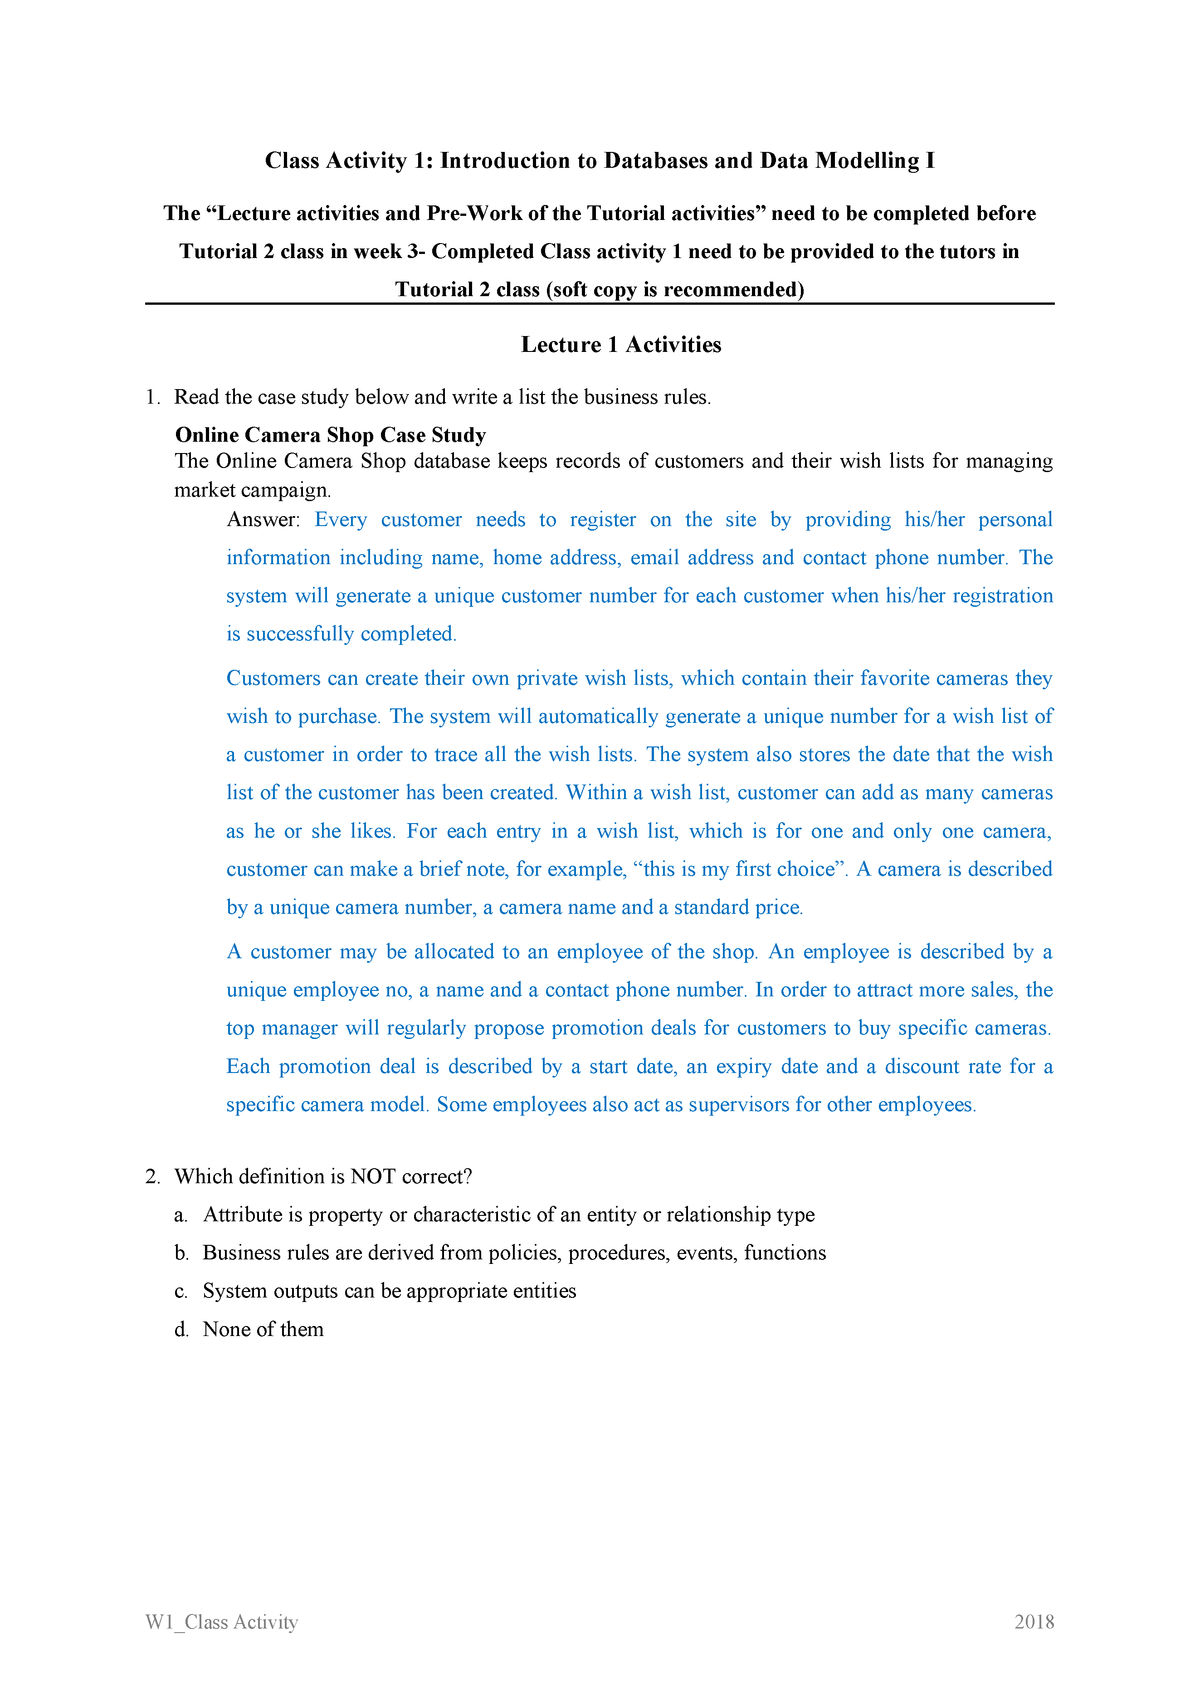 W1 Class Activity 1 Answer - 031271 Database Fundamentals